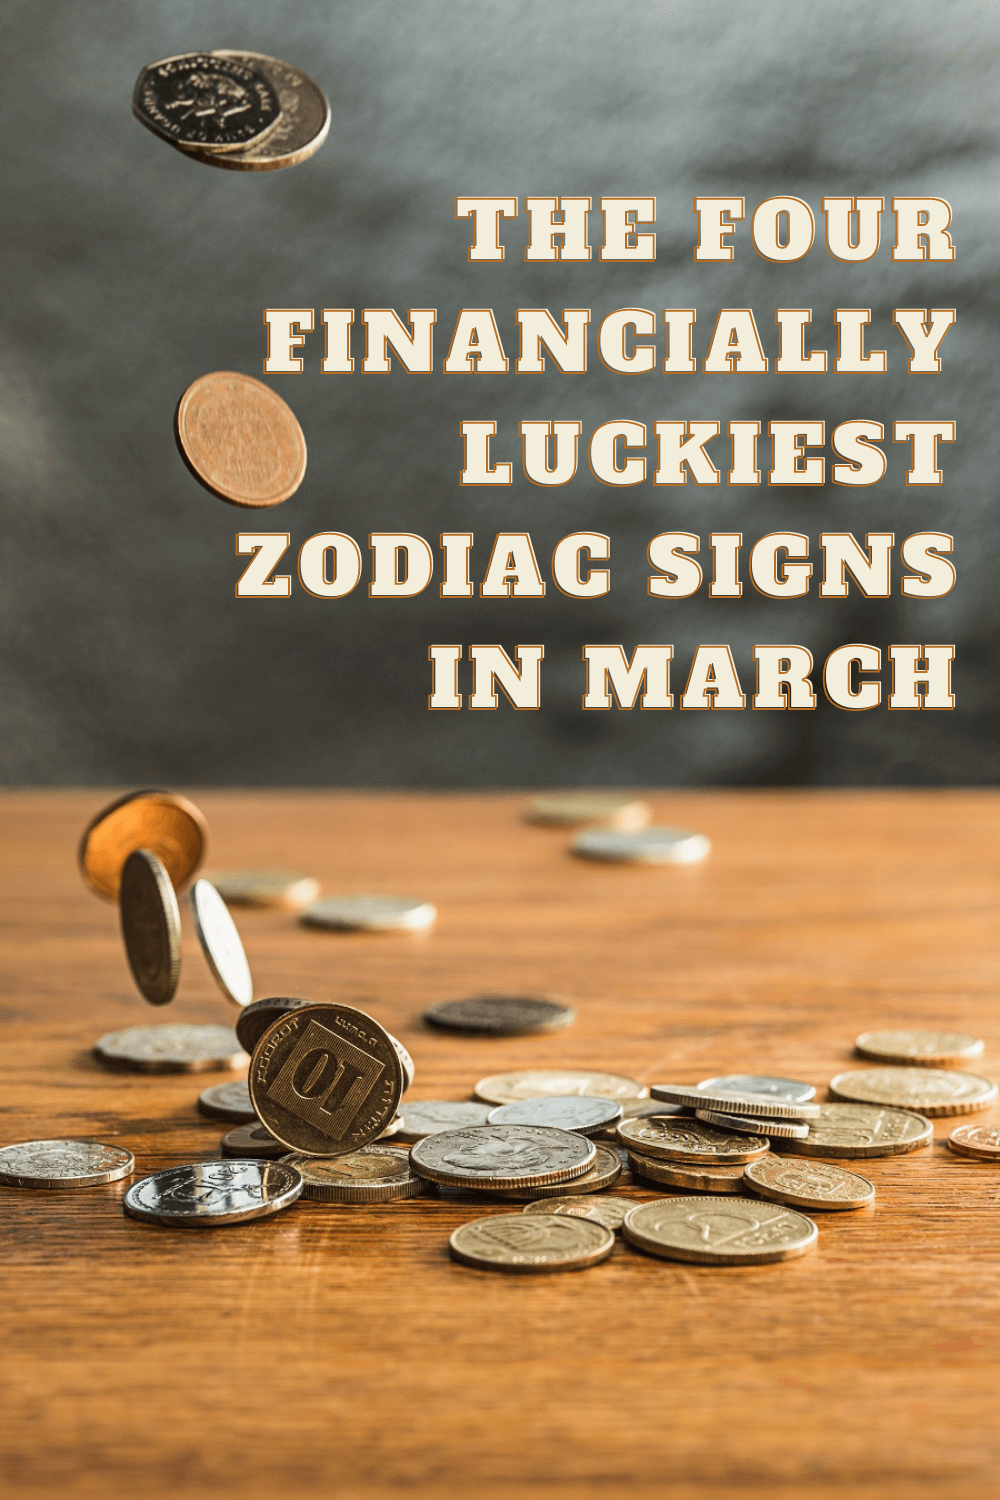 The four financially luckiest zodiac signs in March